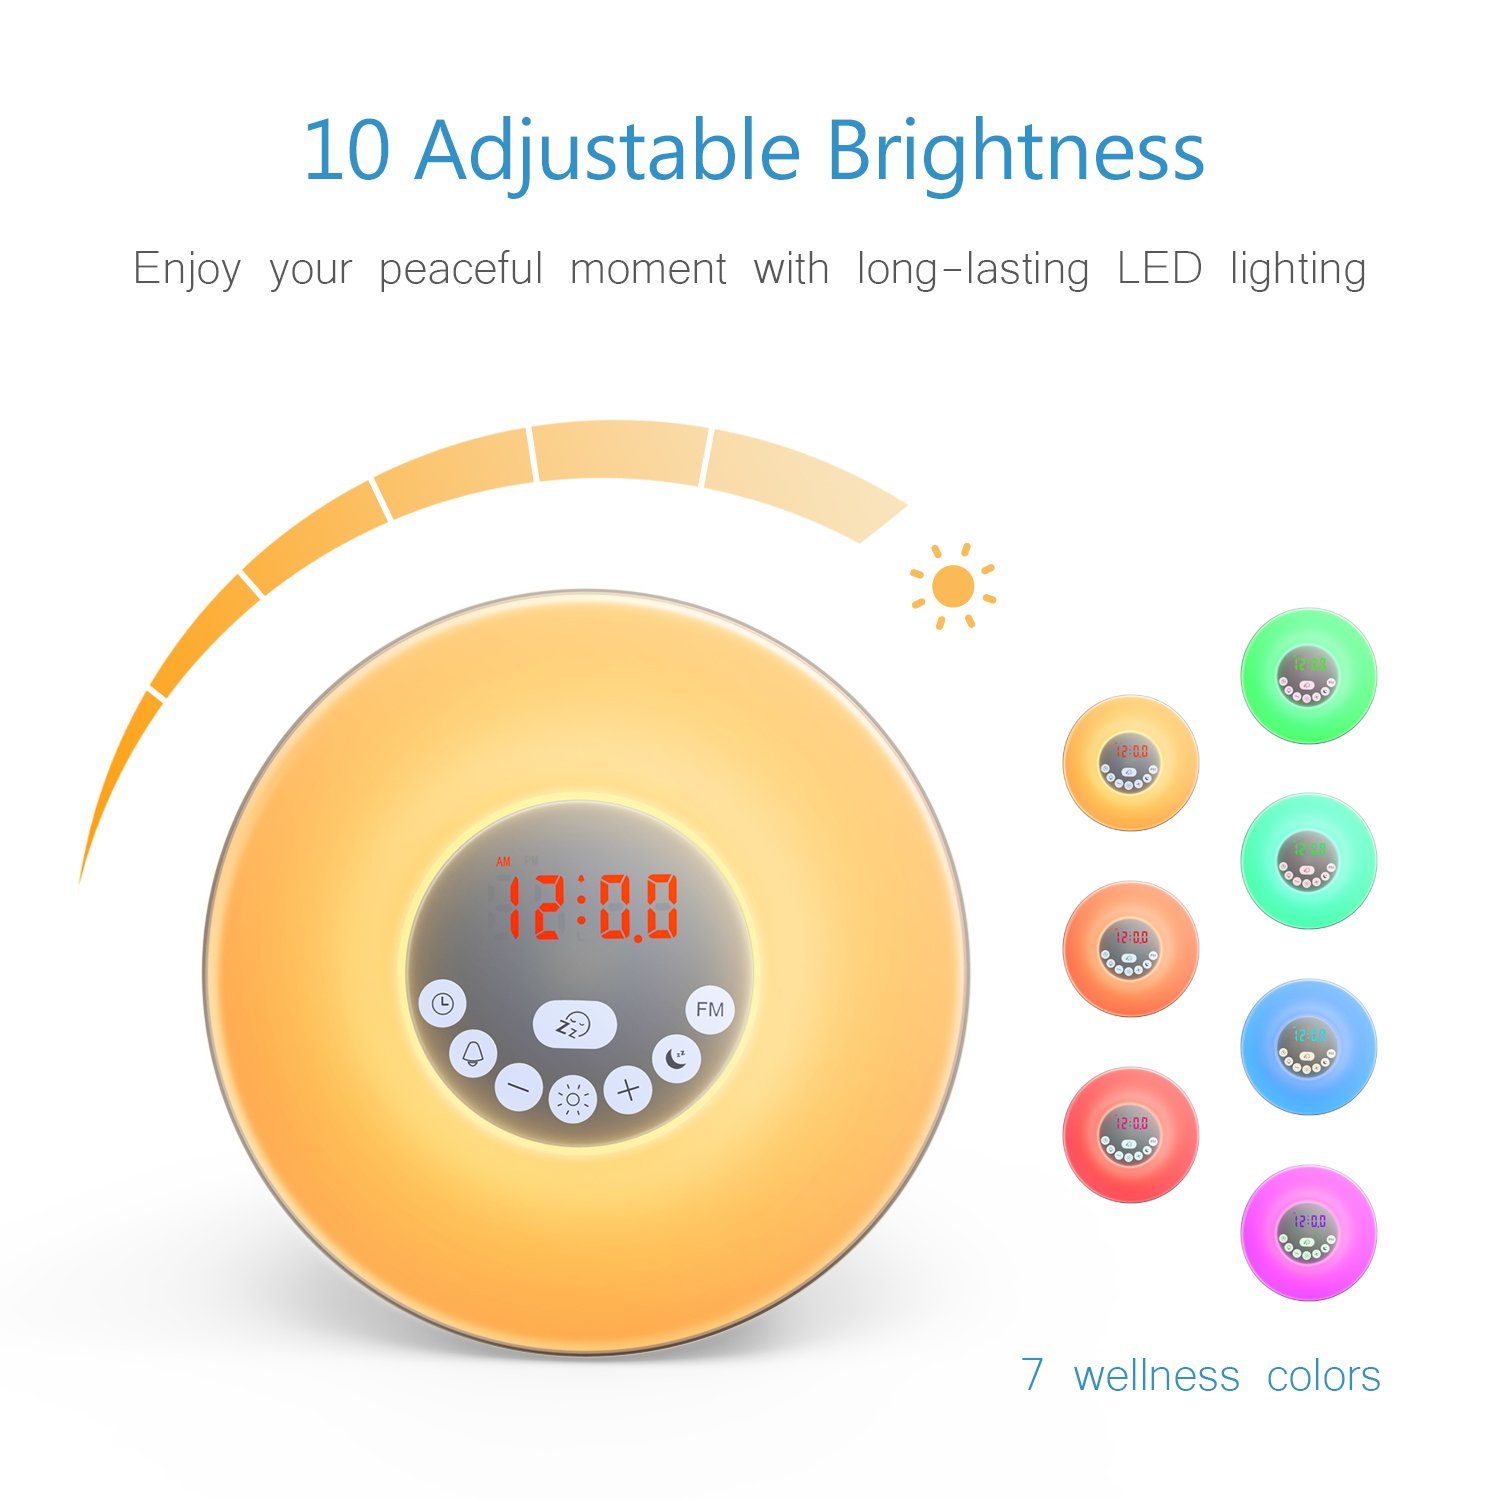 Sunrise Alarm Clock, Digital LED Wake Up Light Clock by Vodool - 7 Color Switchs 10 Brightness Levels and FM Radio, Multiple 6 Nature Sounds sunrise Sunset Simulation for Bedrooms and Heavy Sleepers